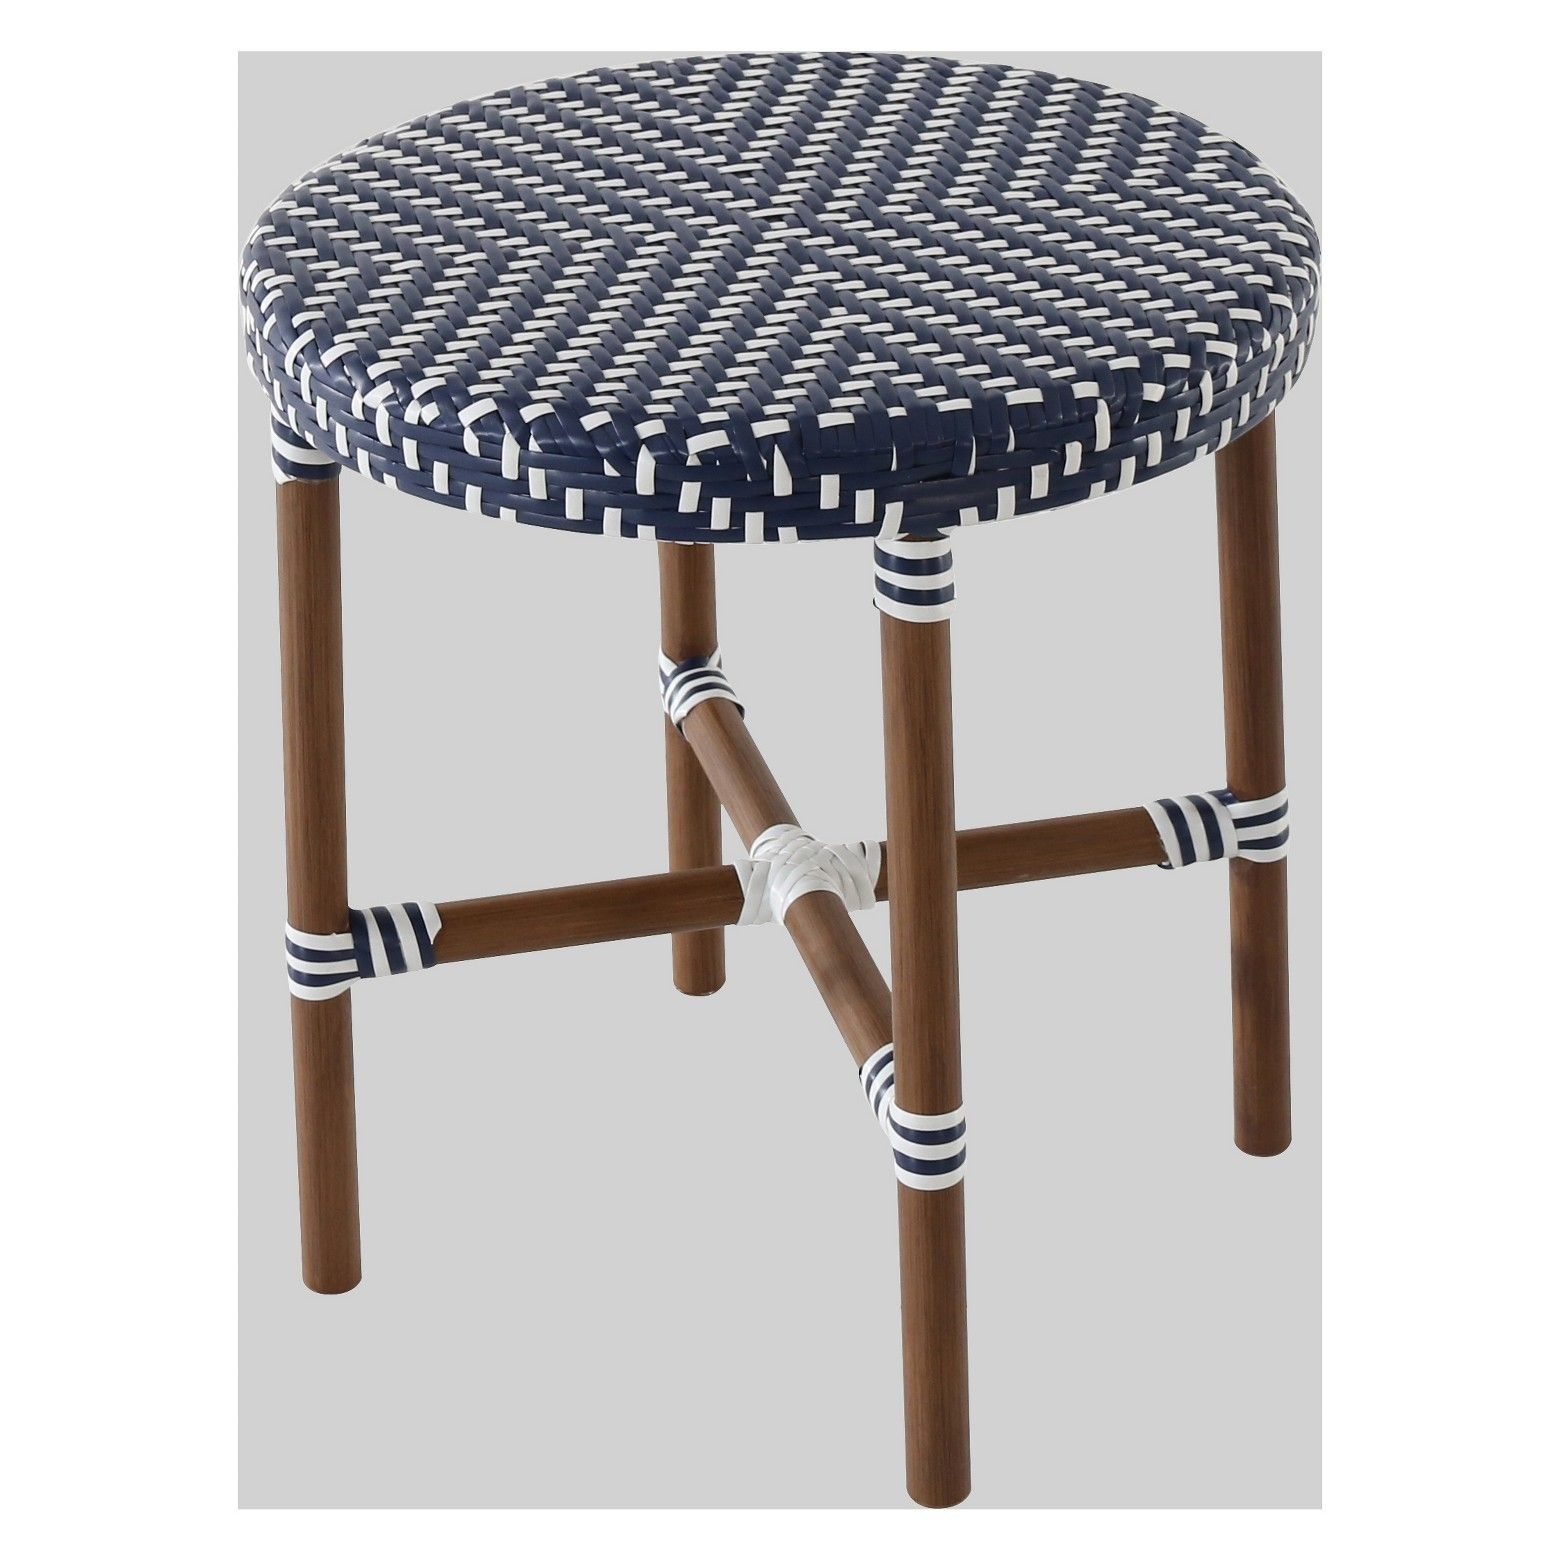 threshold french wicker patio accent table navy white outdoor woven metal bathroom heater woodbury small semi circle home plans ethan allen used furniture blue painted coffee